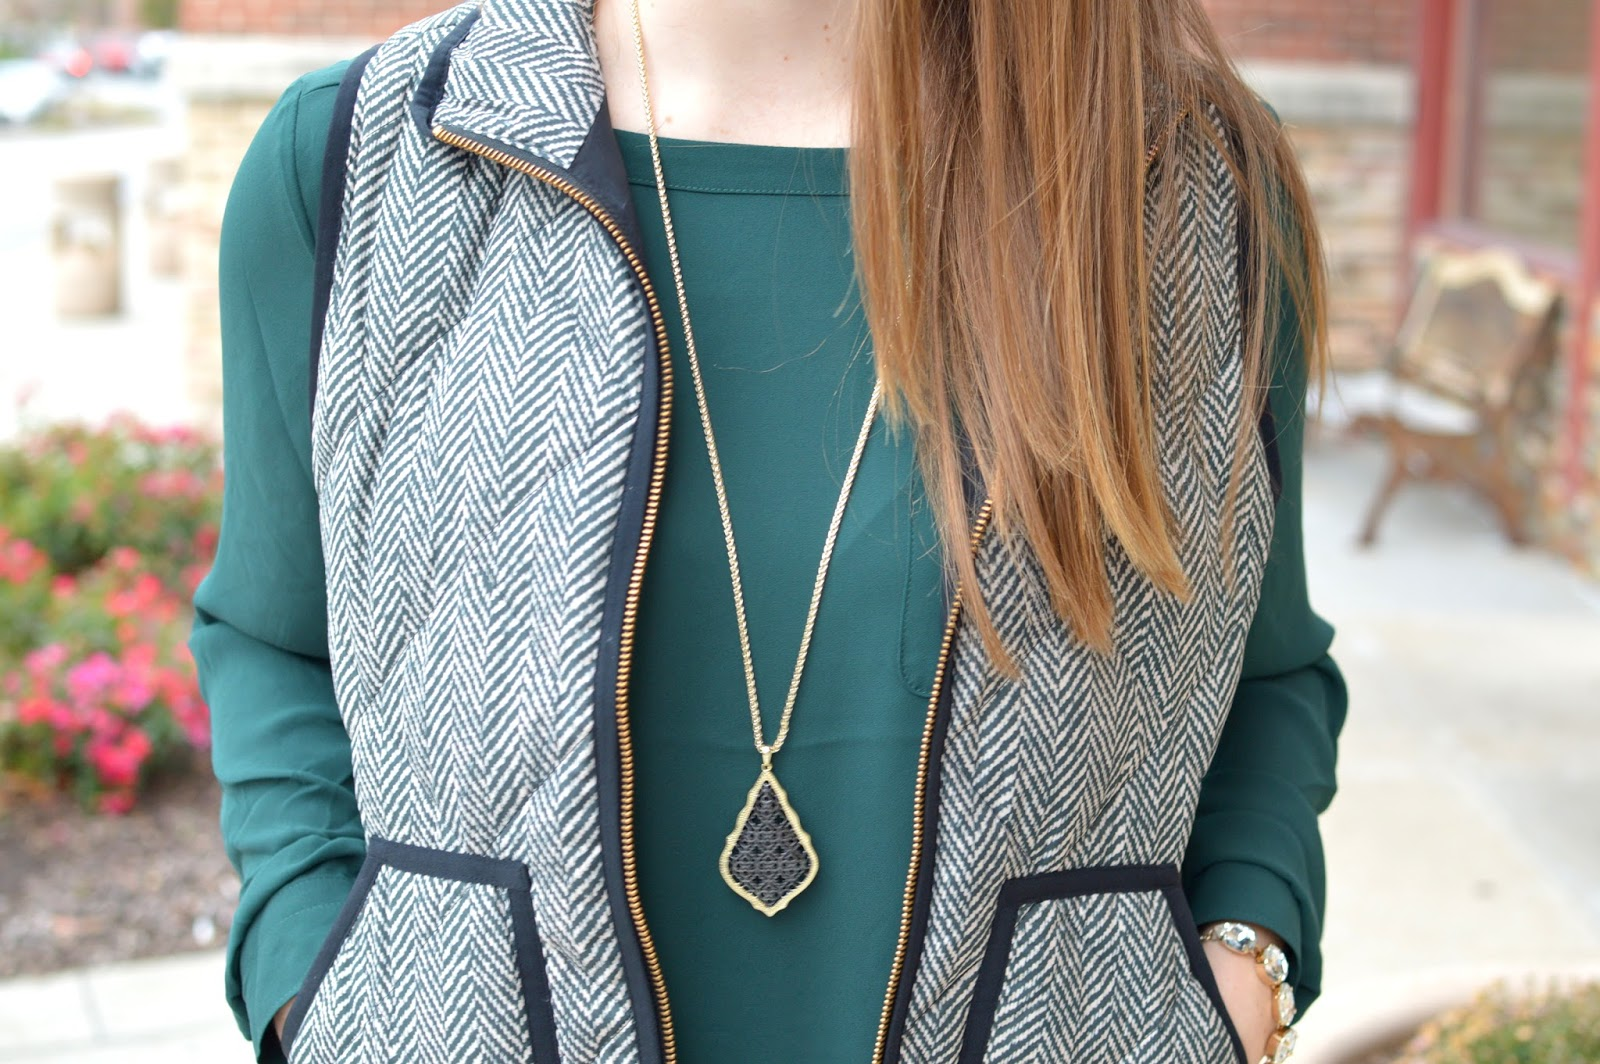 j.crew herringbone vest with a kendra scott necklace